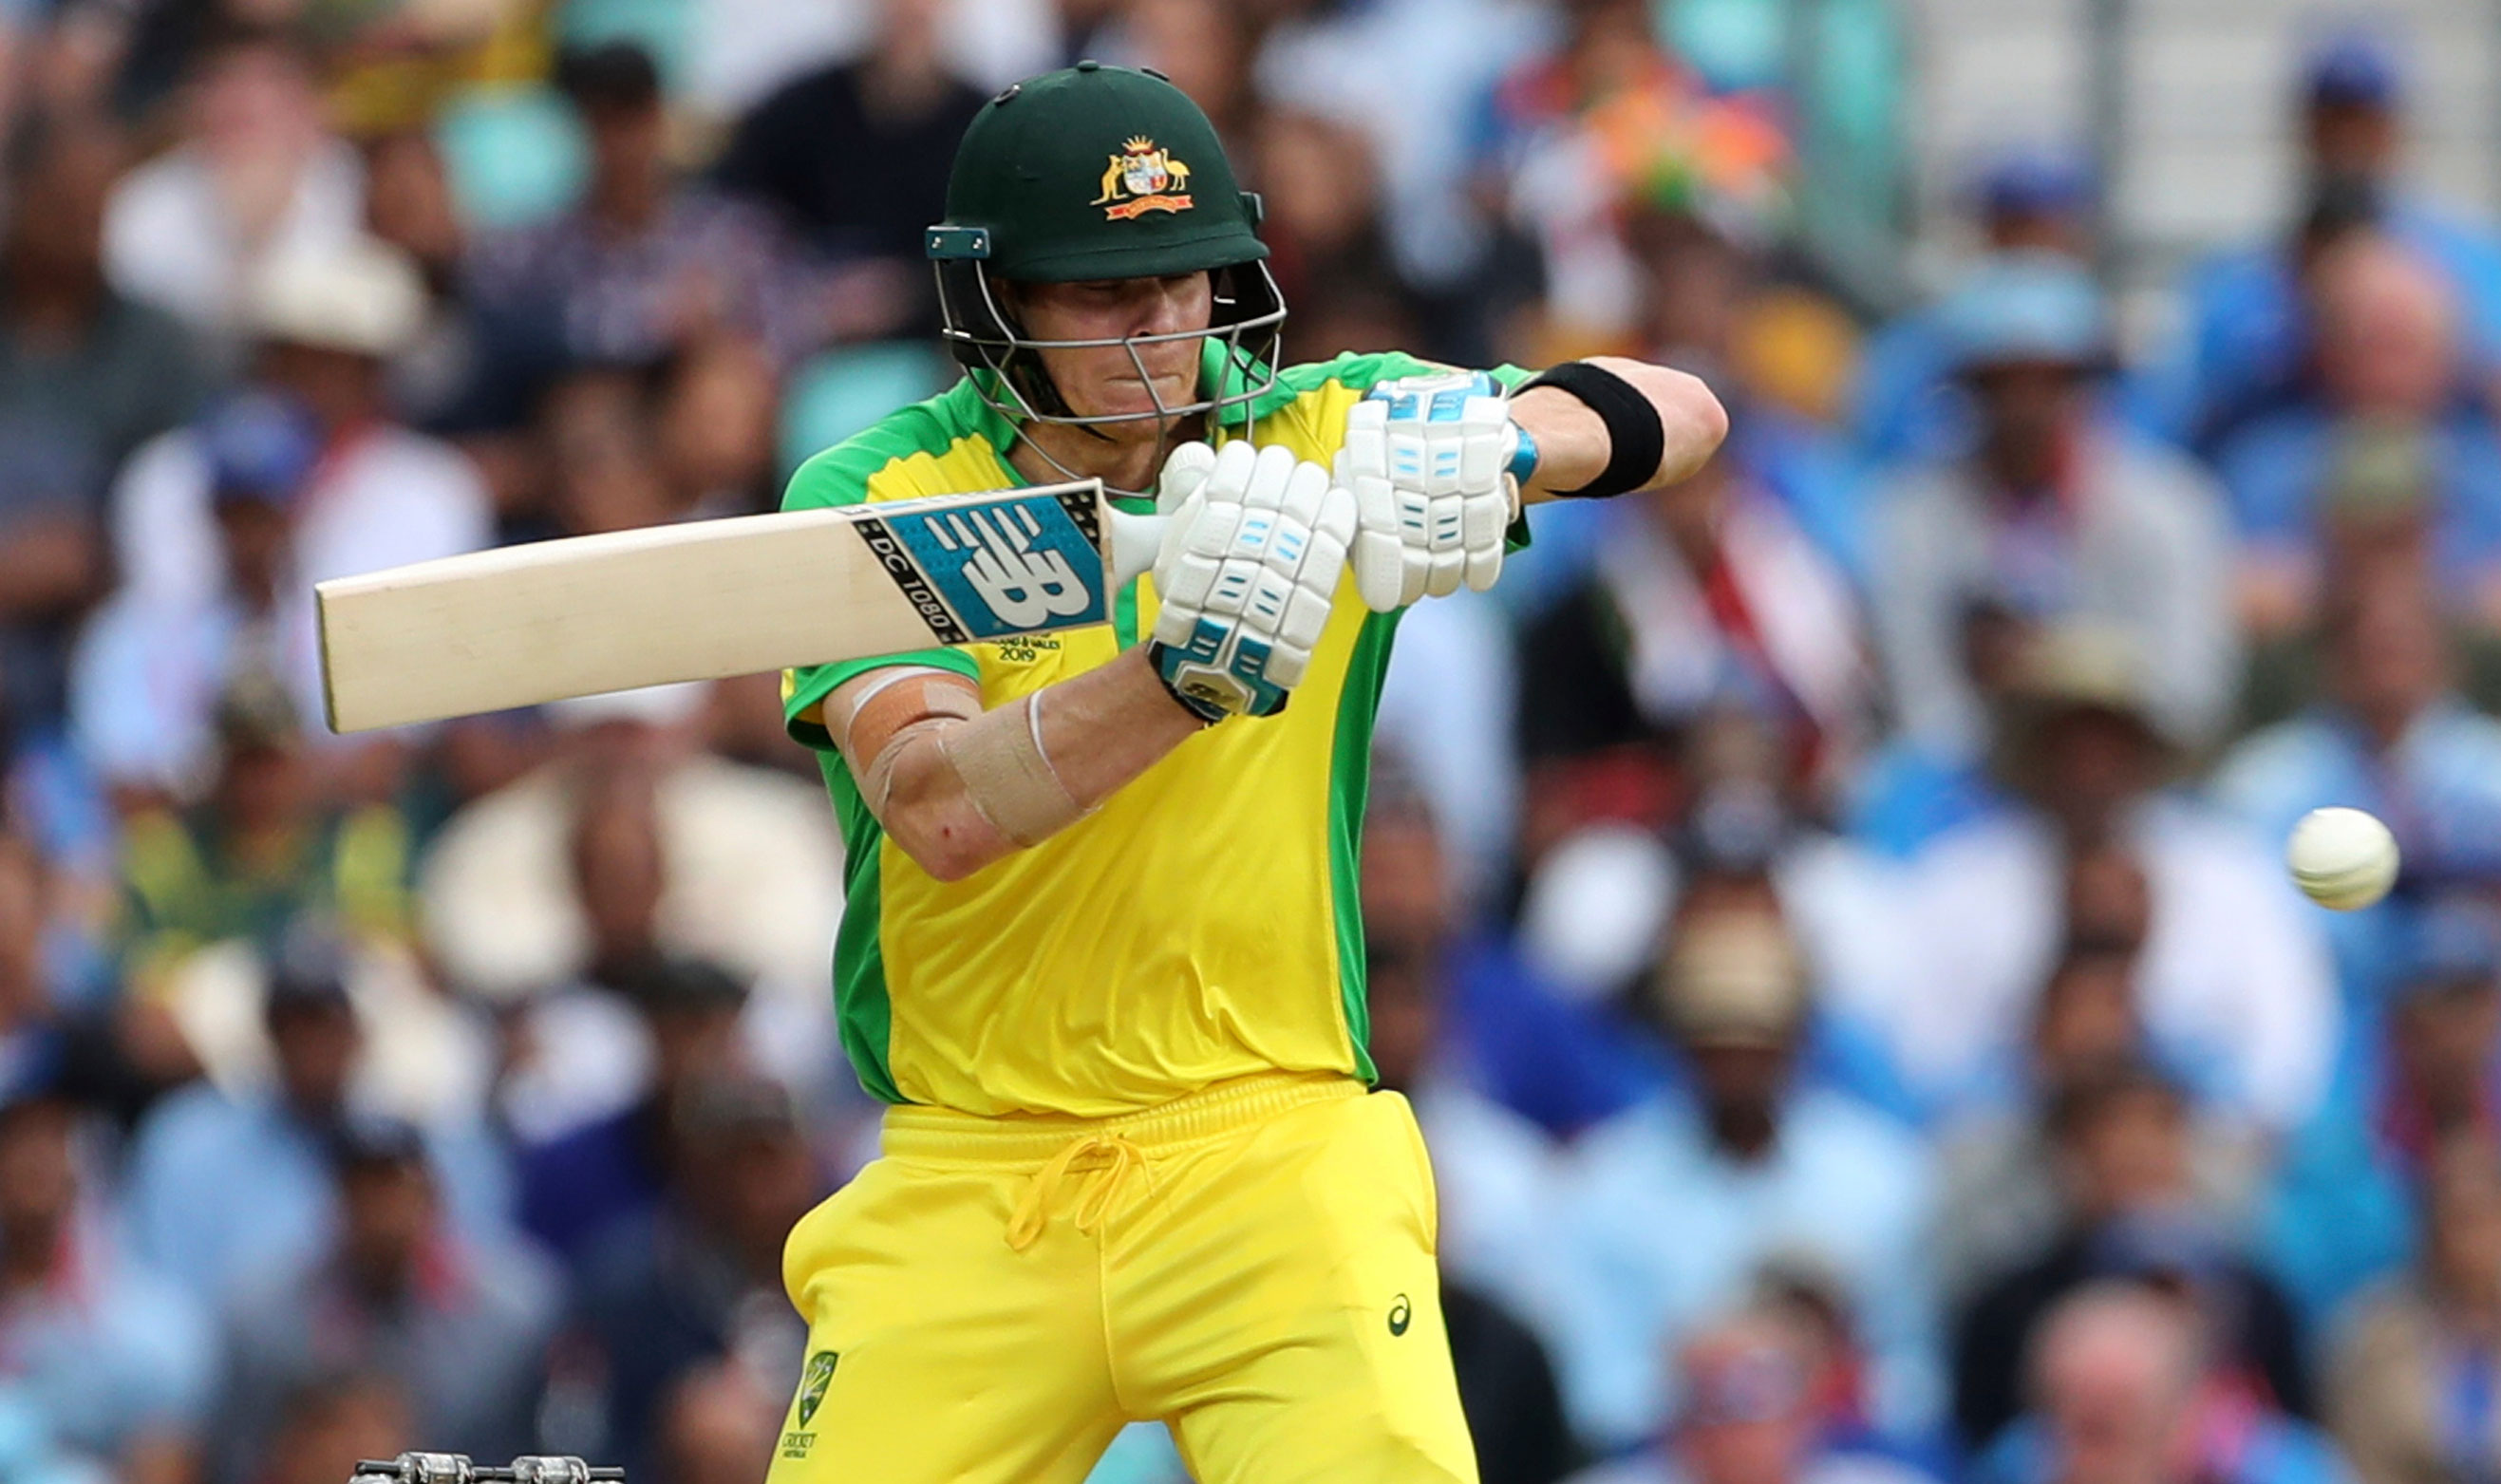 Steve Smith bats during the ICC Cricket World Cup match between Australia and India at The Oval in London, on June 9, 2019.